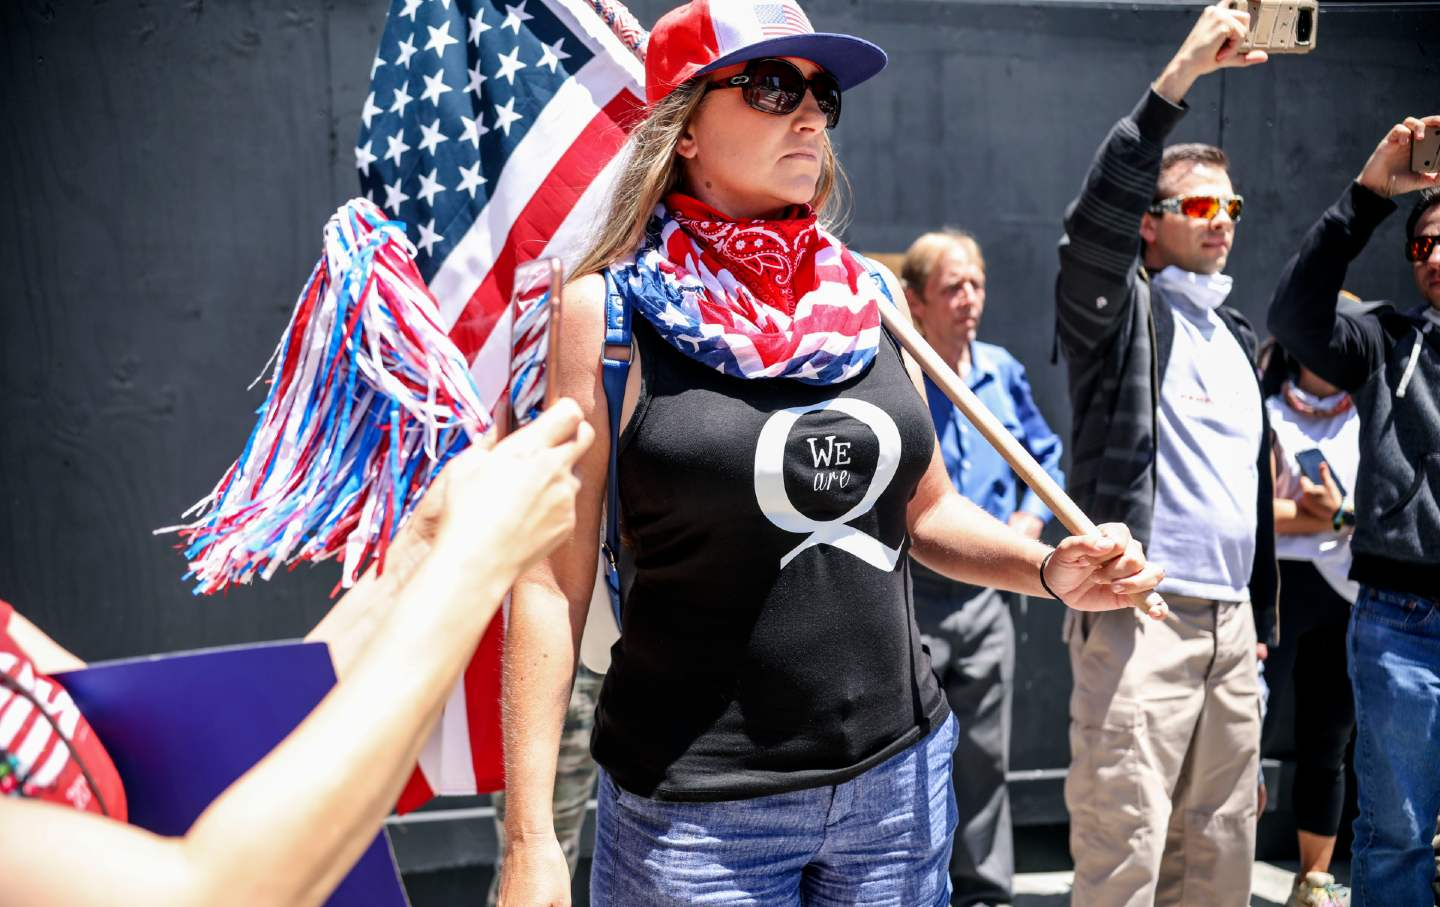 A woman in a shirt showing support for the QAnon conspiracy theory holds an American flag.